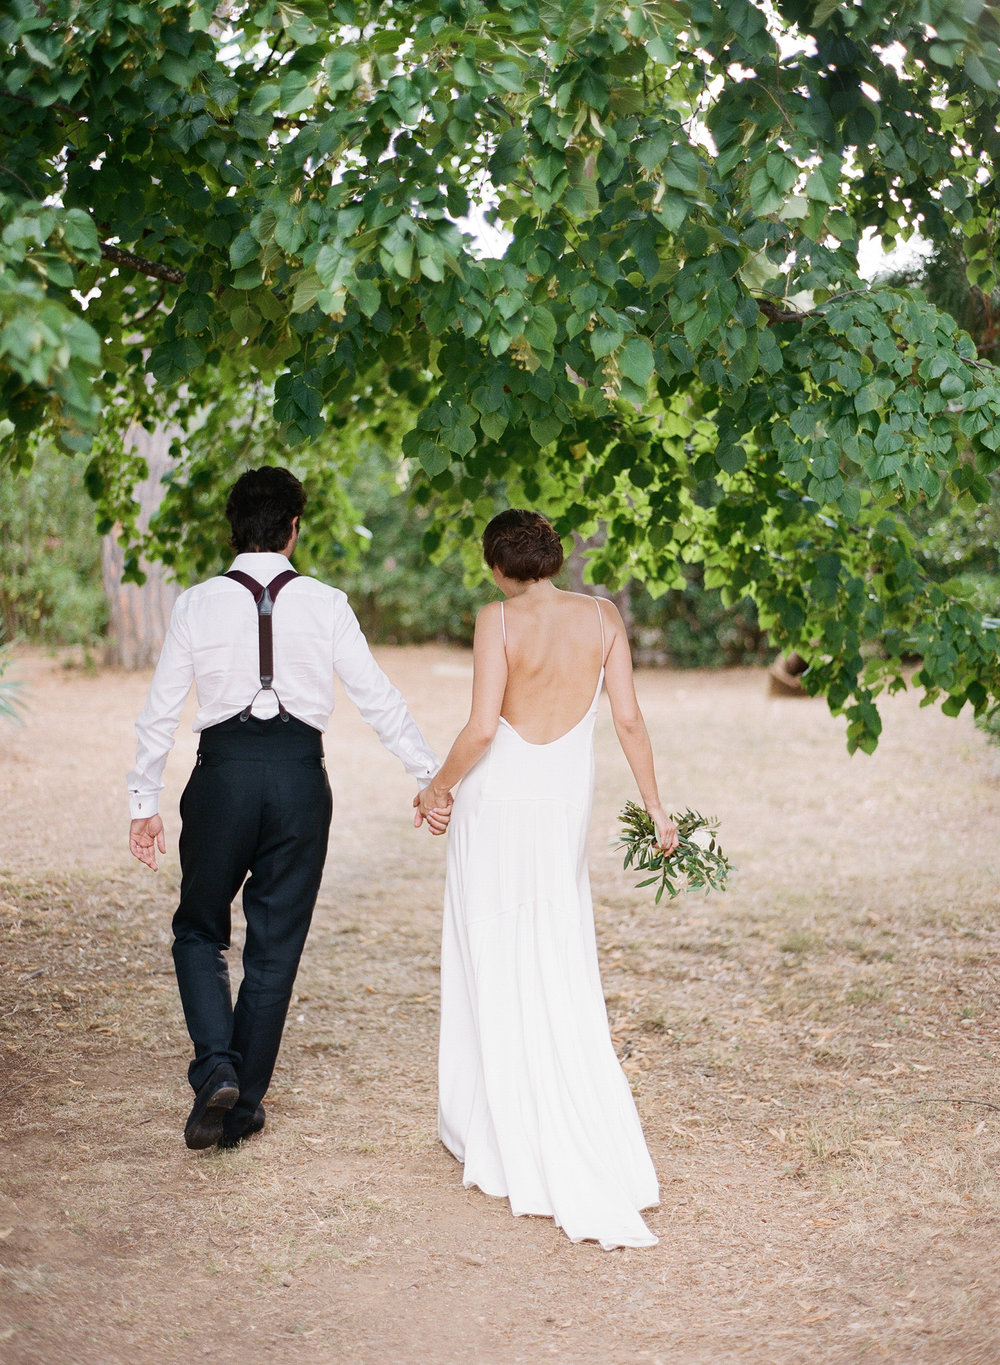 The bride and groom walk in the chateau grounds after the wedding ceremony; Sylvie Gil Photography